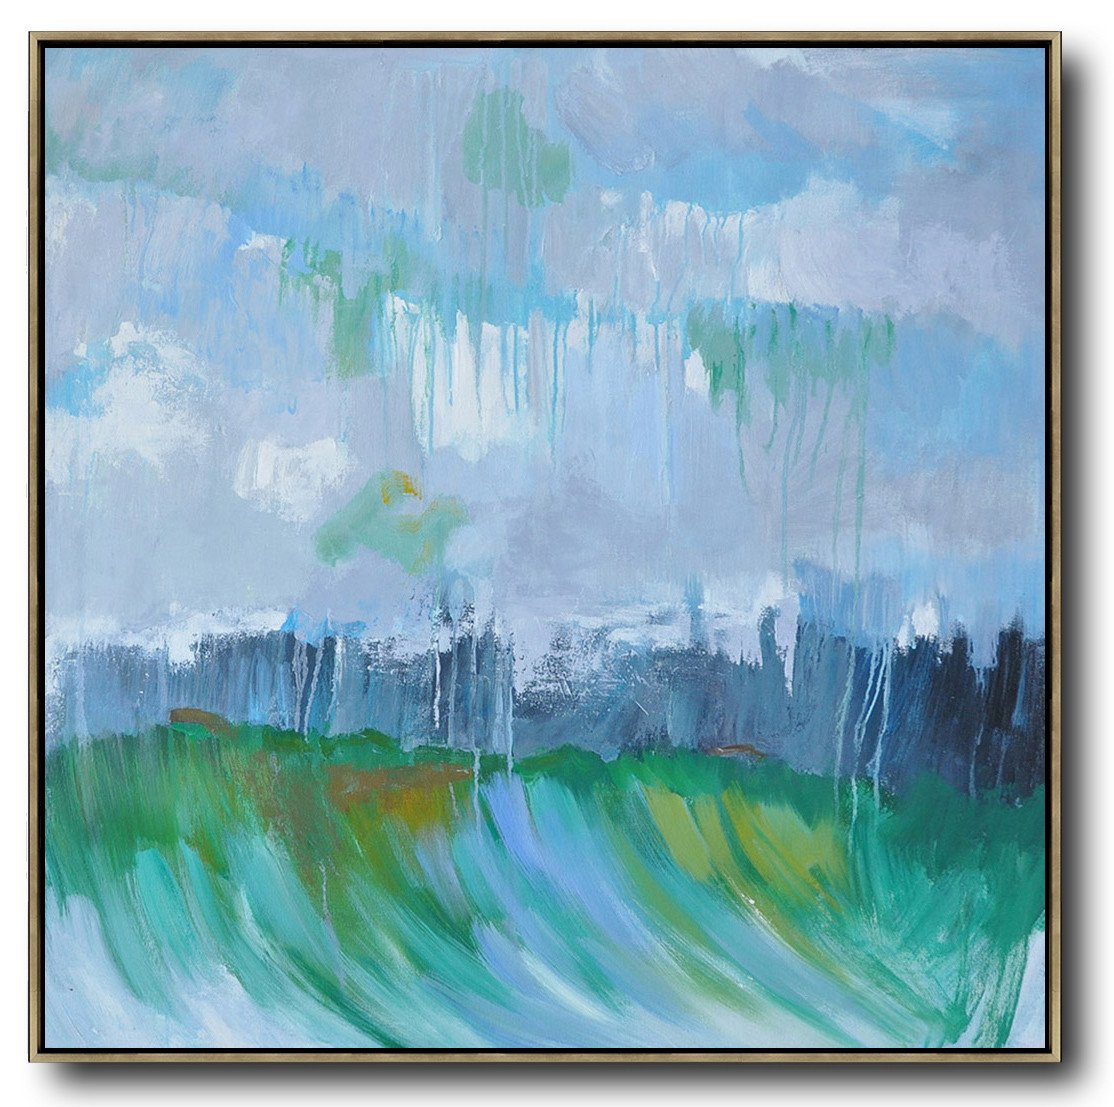 Extra Large Canvas Art,Oversized Abstract Landscape Oil Painting,Hand Paint Large Clean Modern Art,Gray,Green,Dark Blue.etc